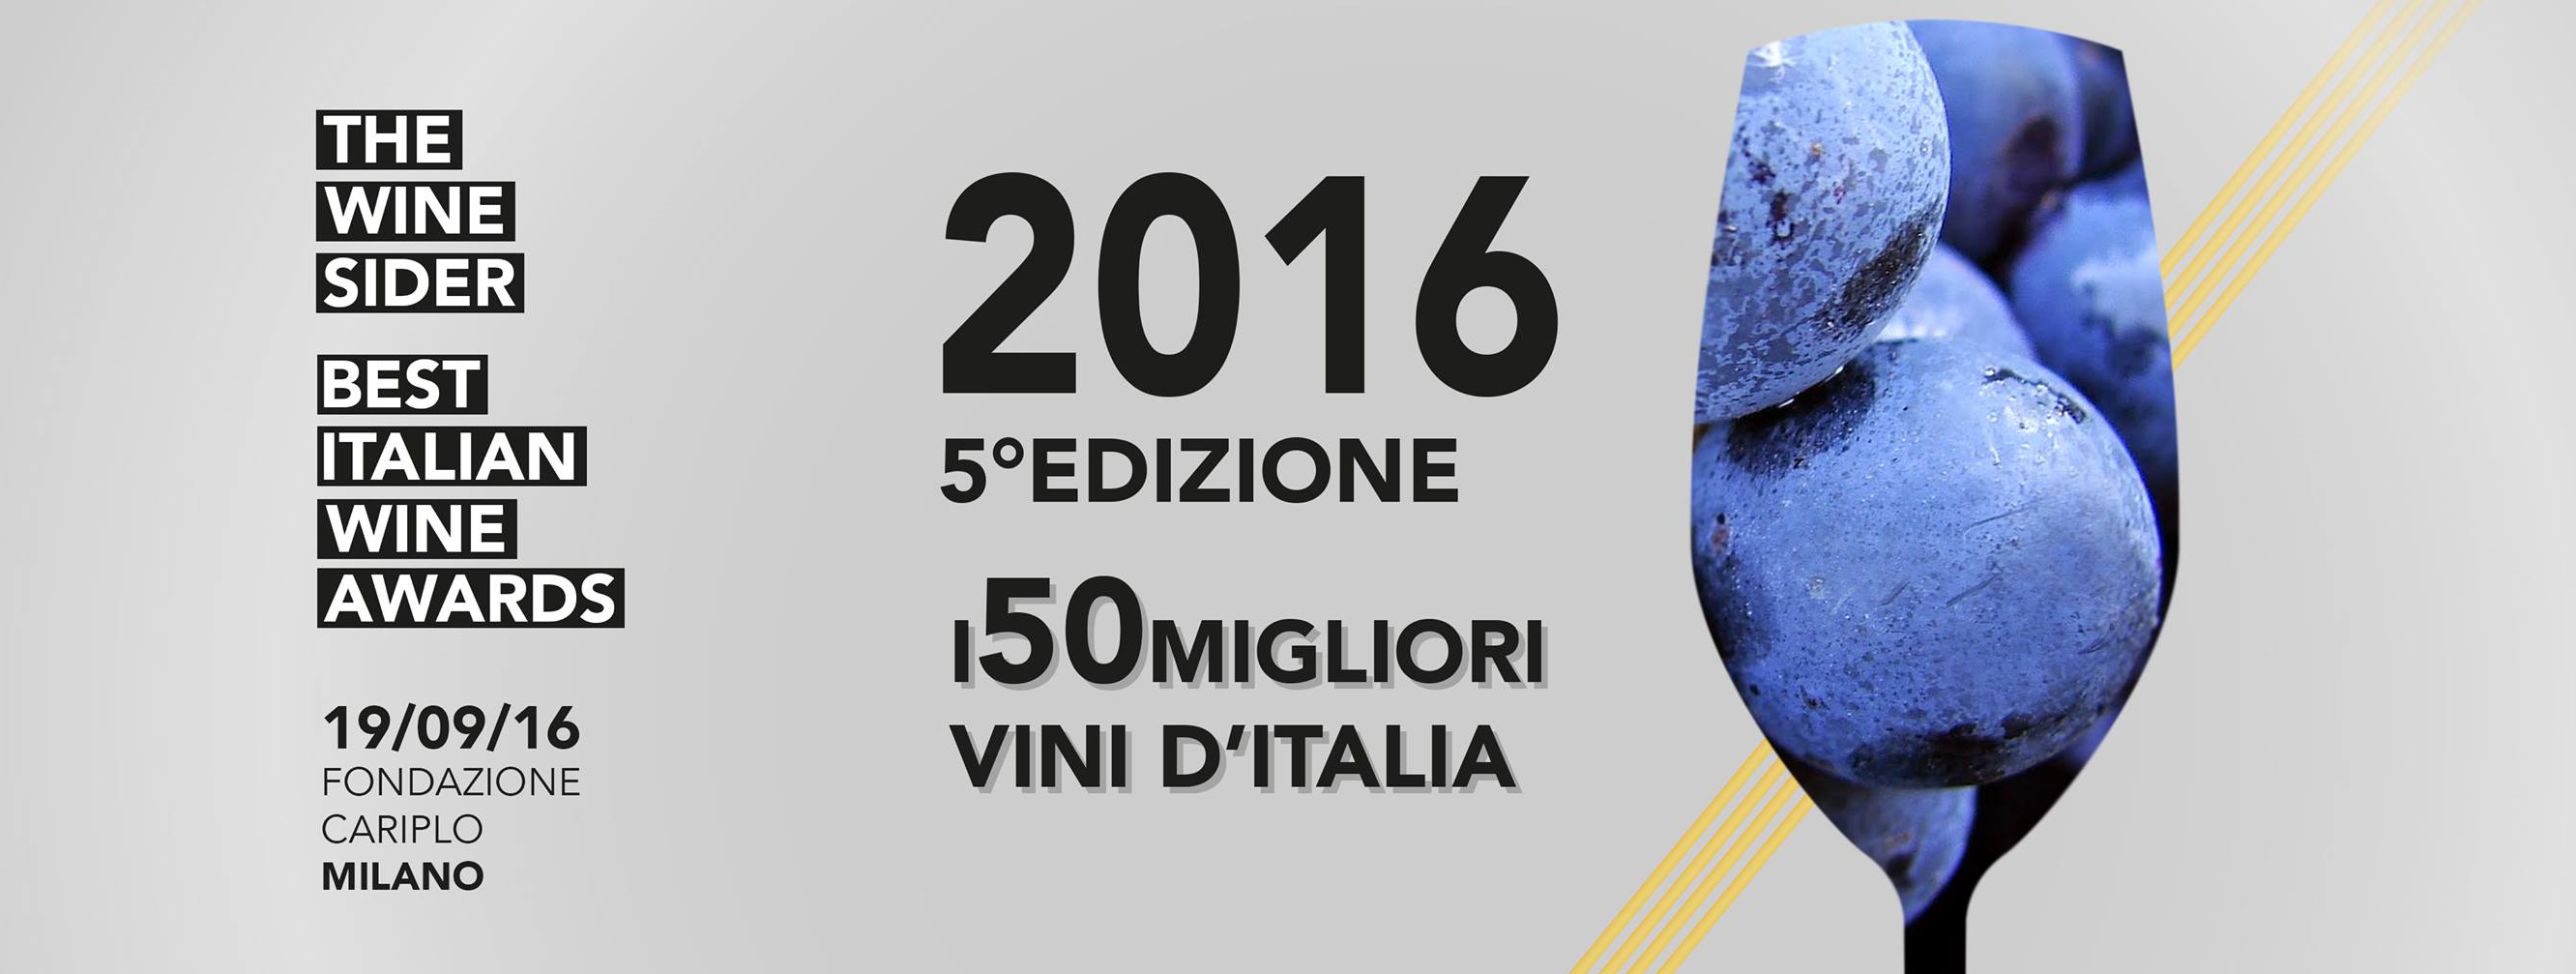 BIWA - Best Italian Wine Awards